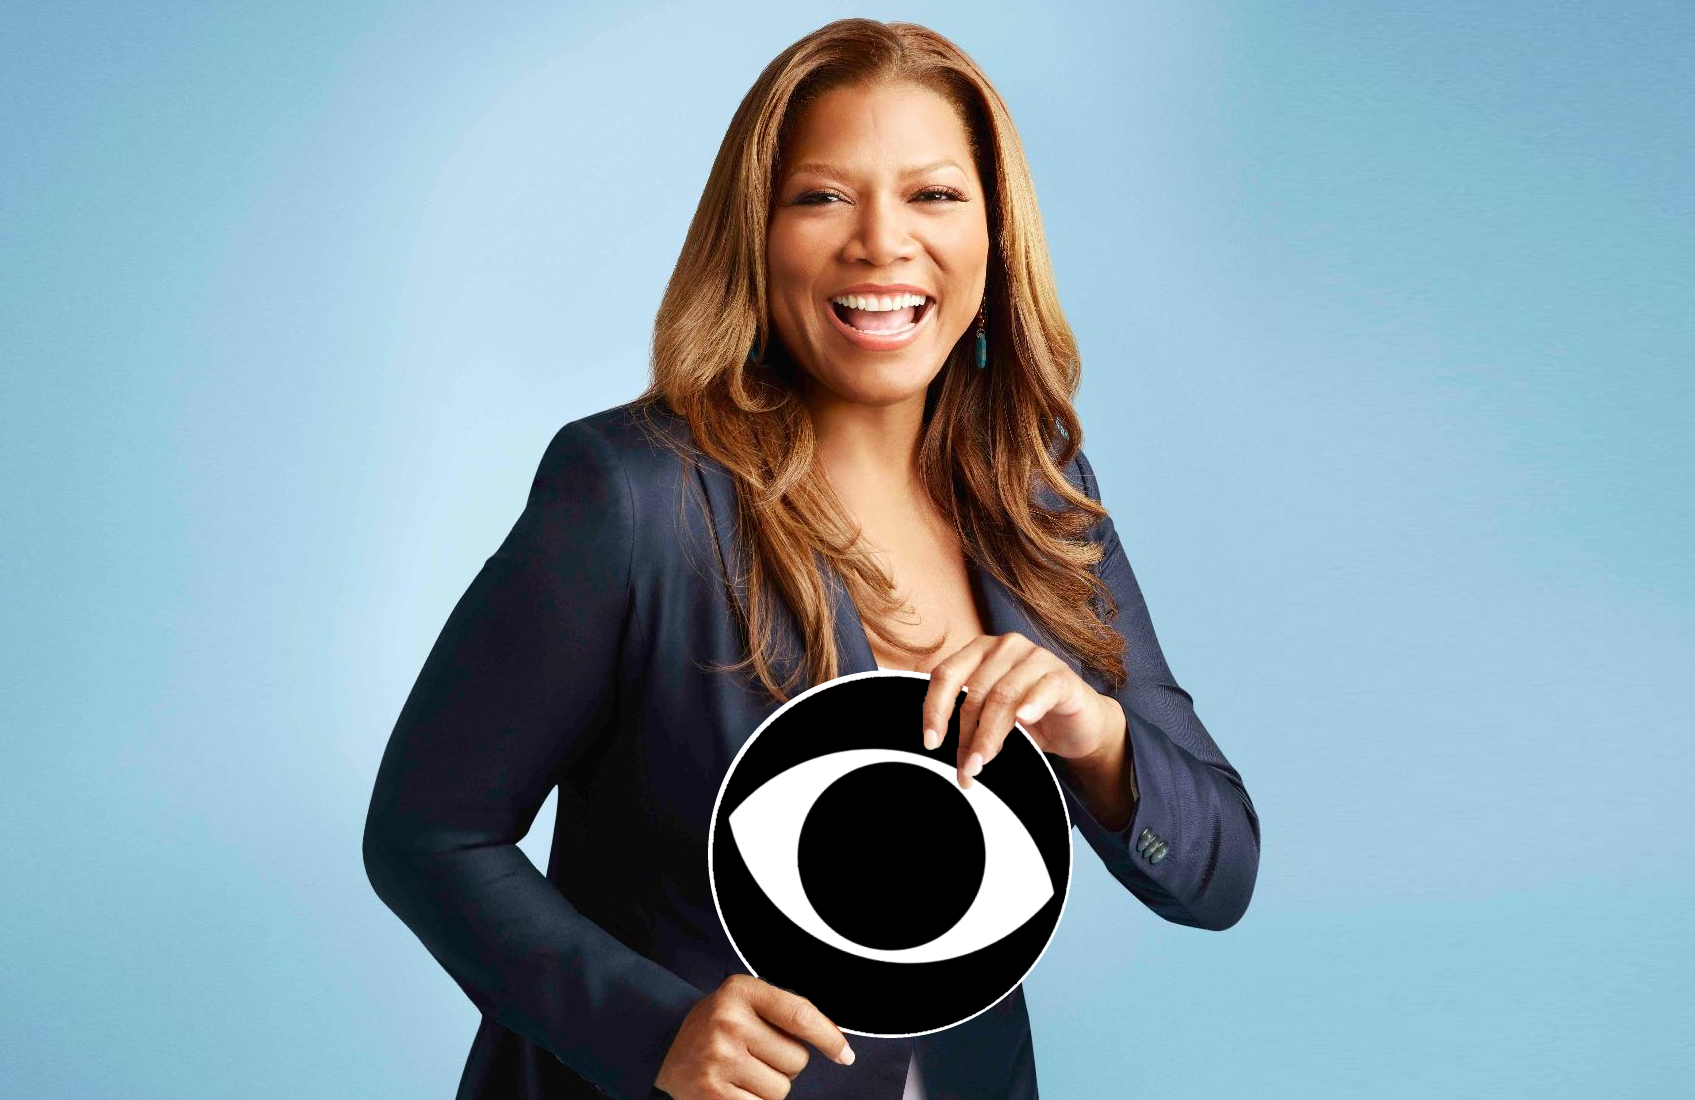 Queen Latifah is joining CBS in a re-imagining of The Equalizer, set to air Sunday nights.